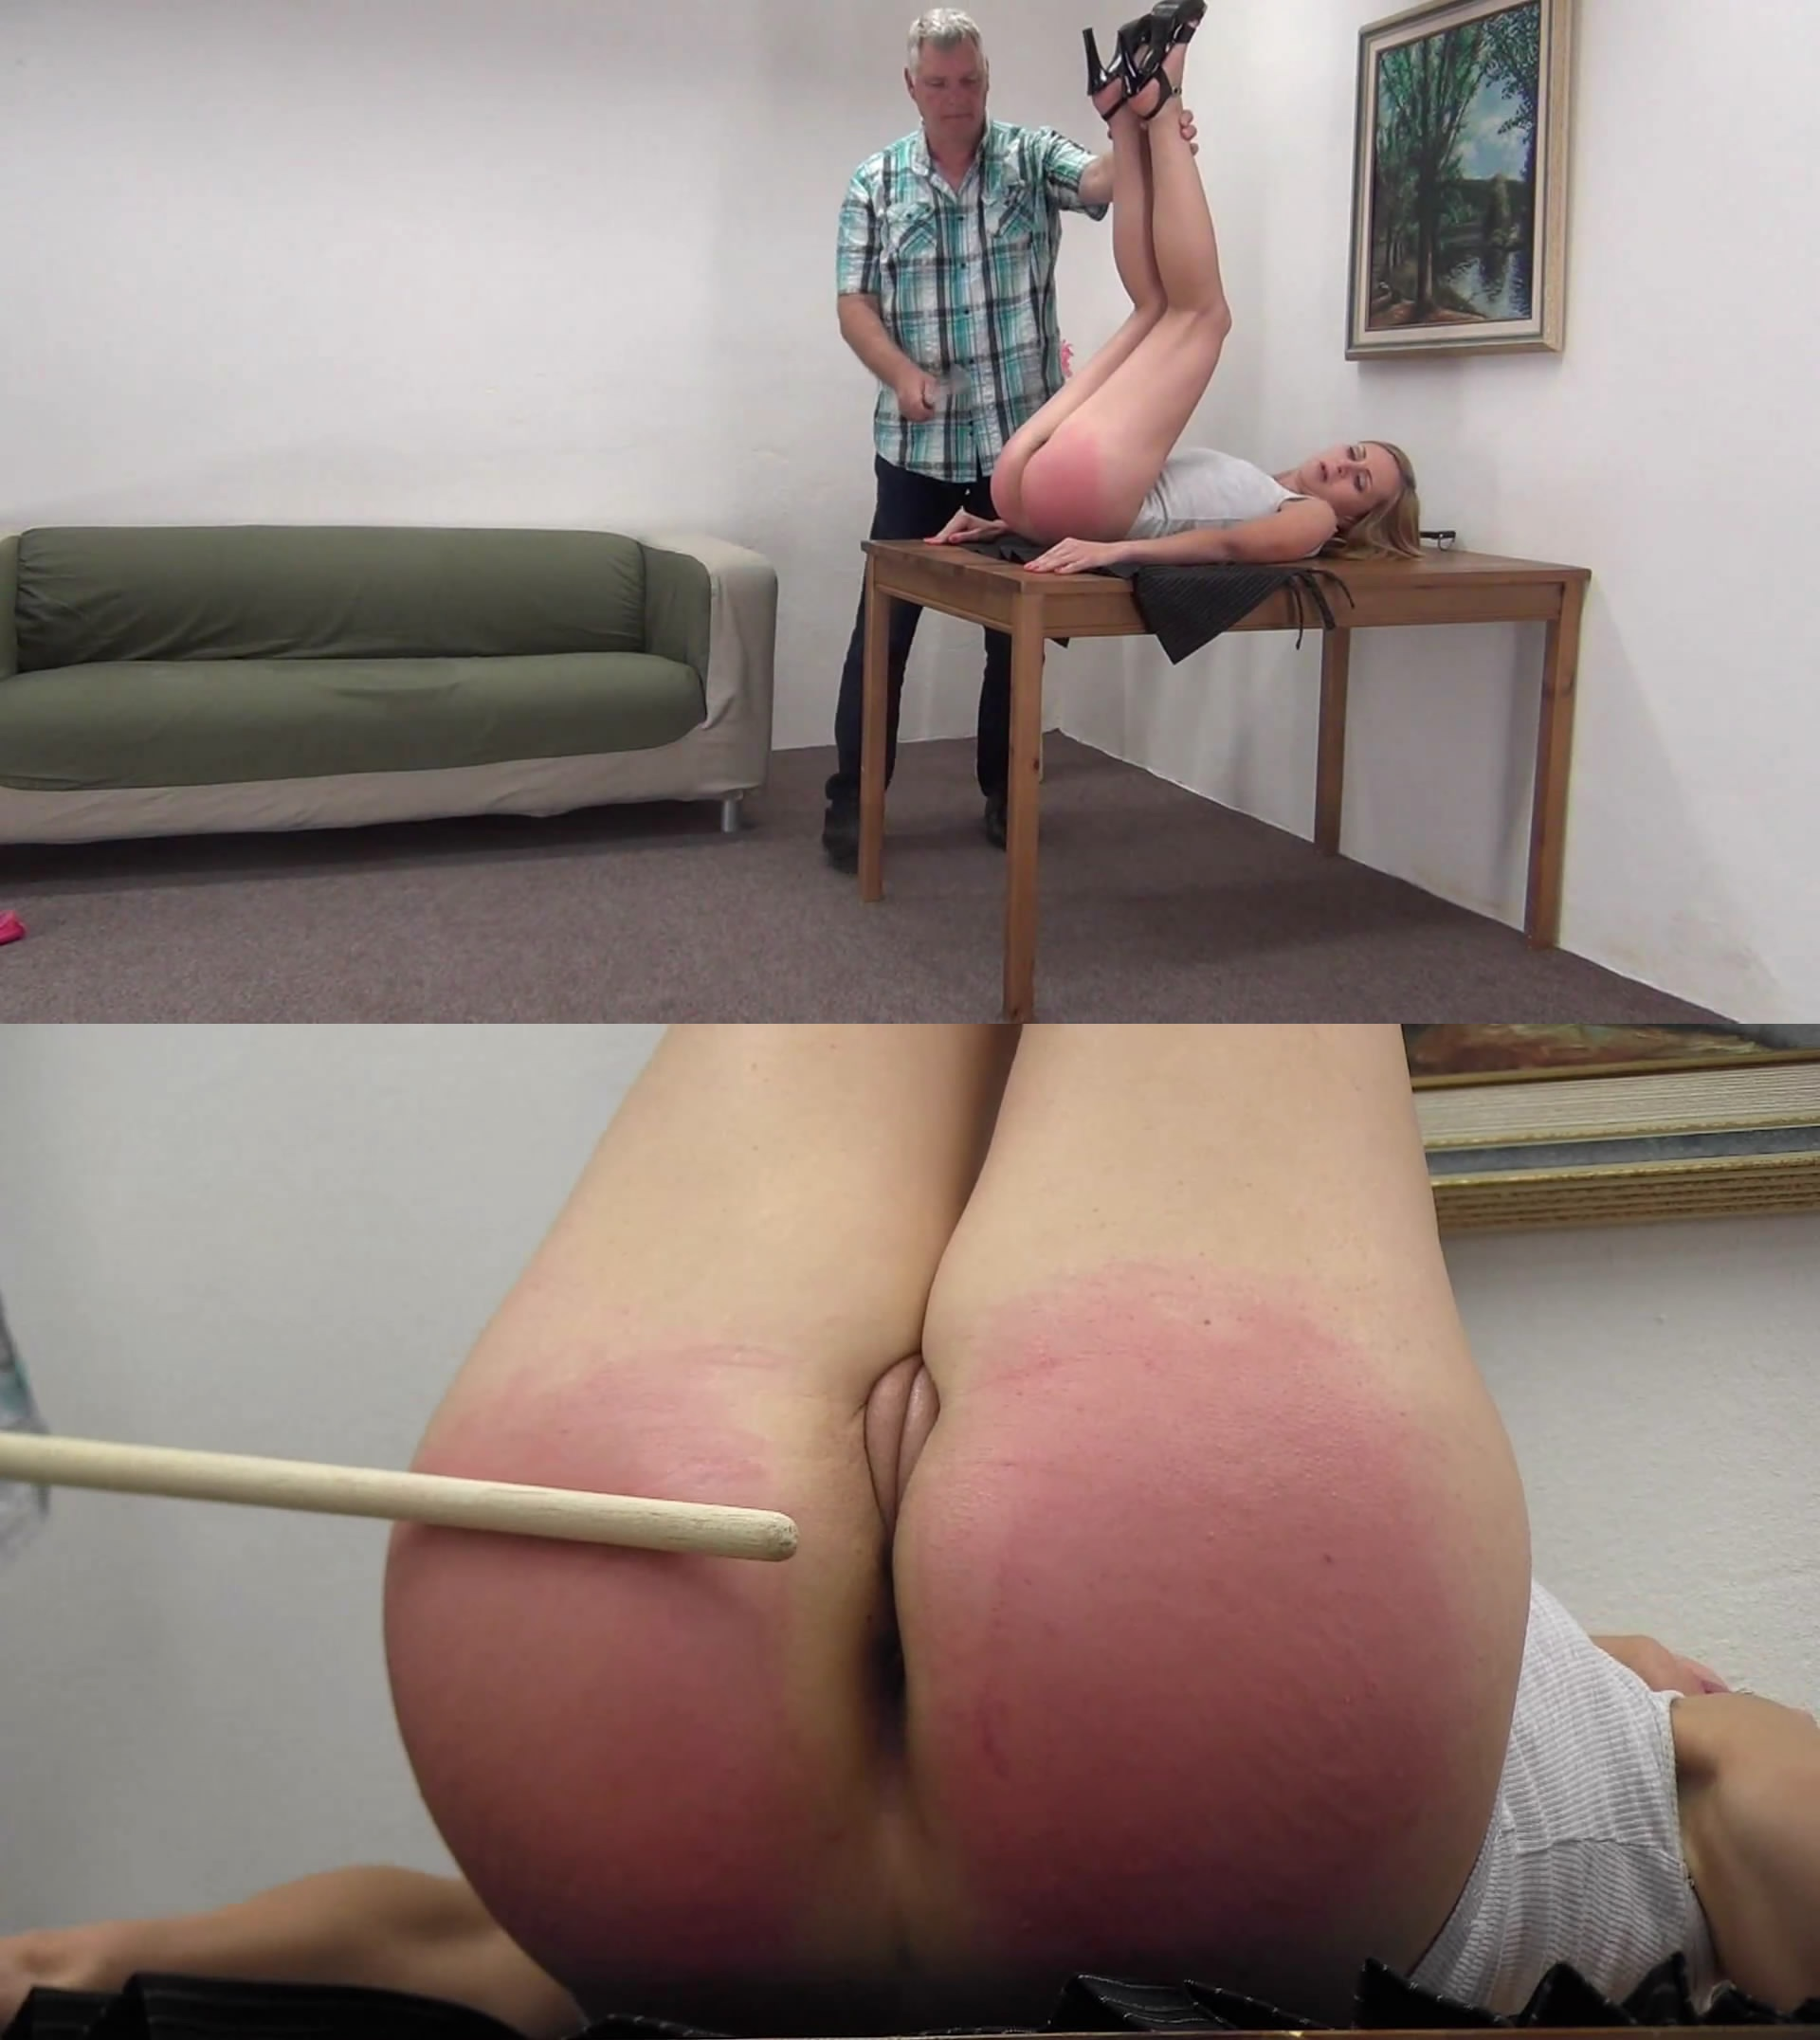 Spanking Server – MP4/Full HD – Luca Bella 3418